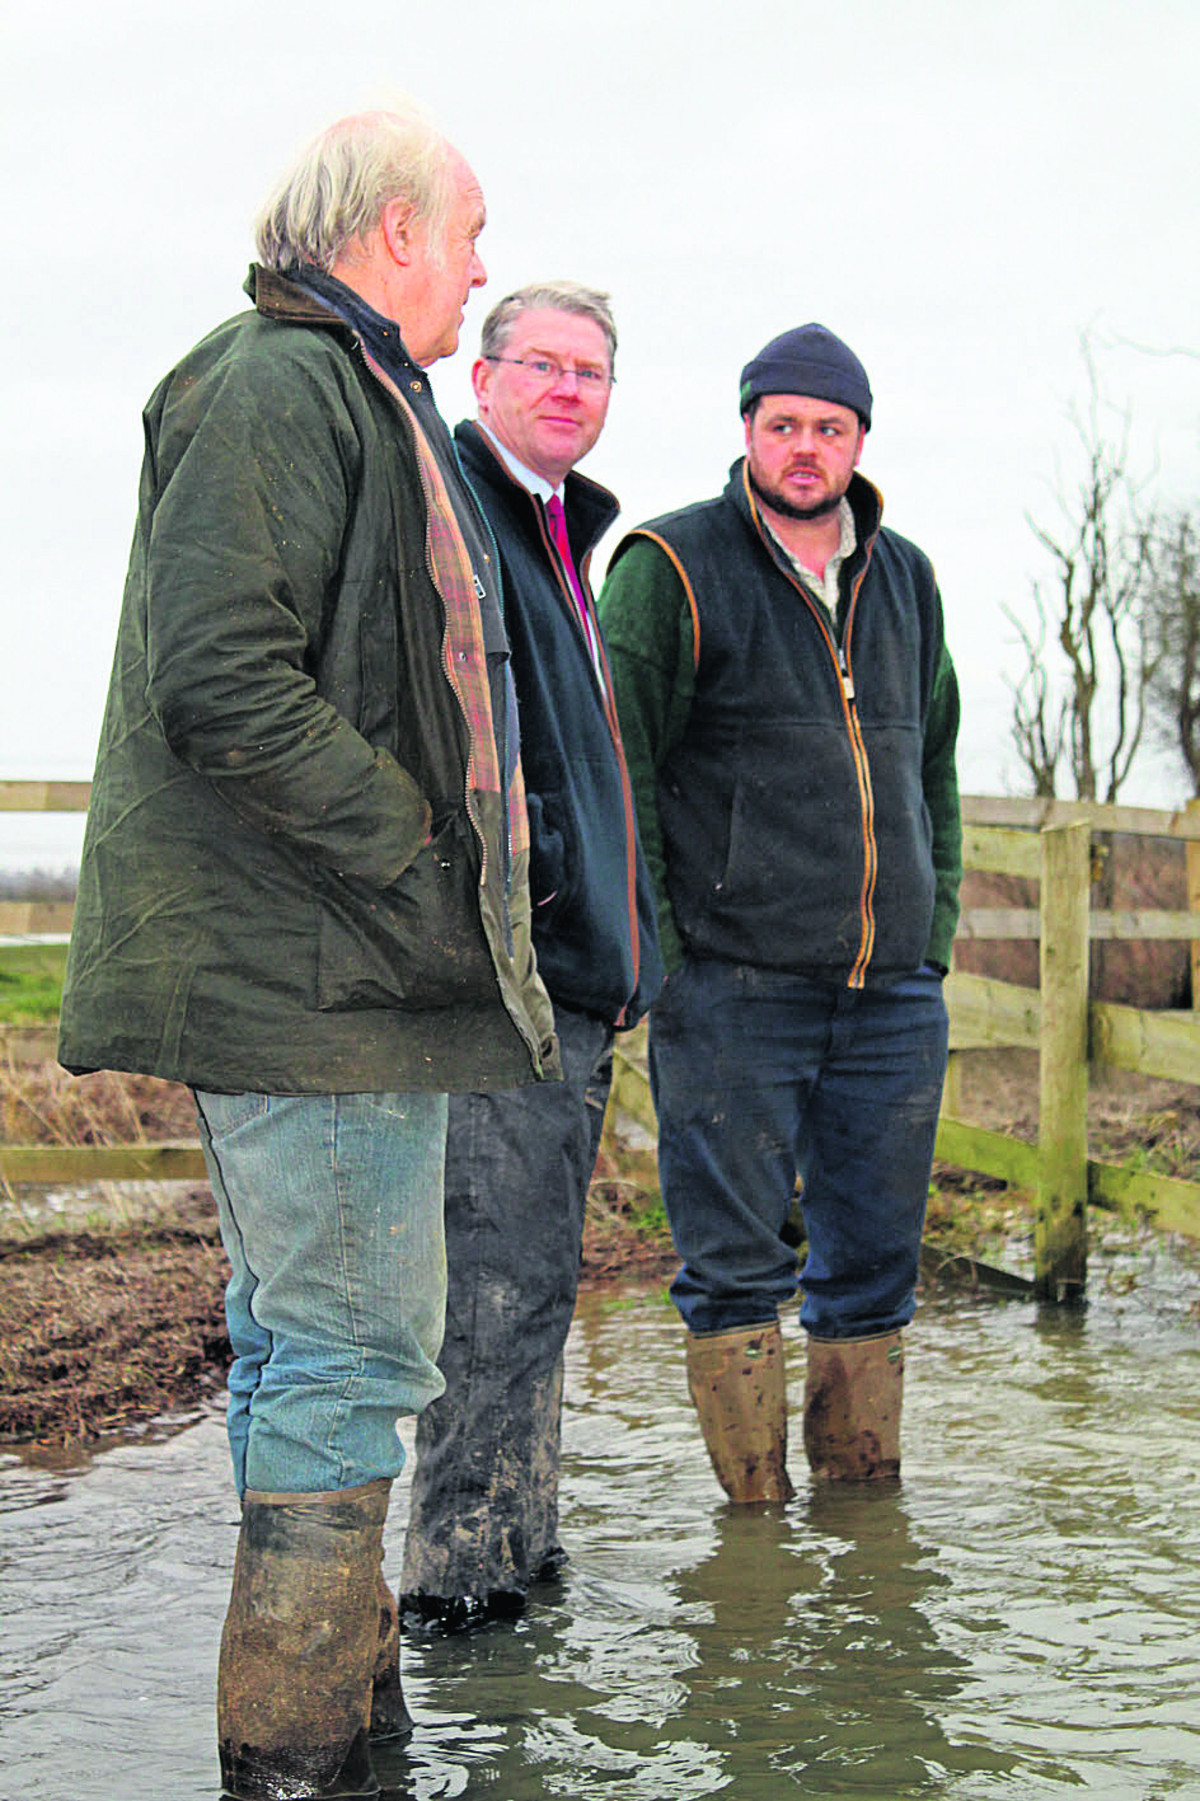 John Hook, NFU president Peter Kendall and Tim Hook at Cote Lodge Farm